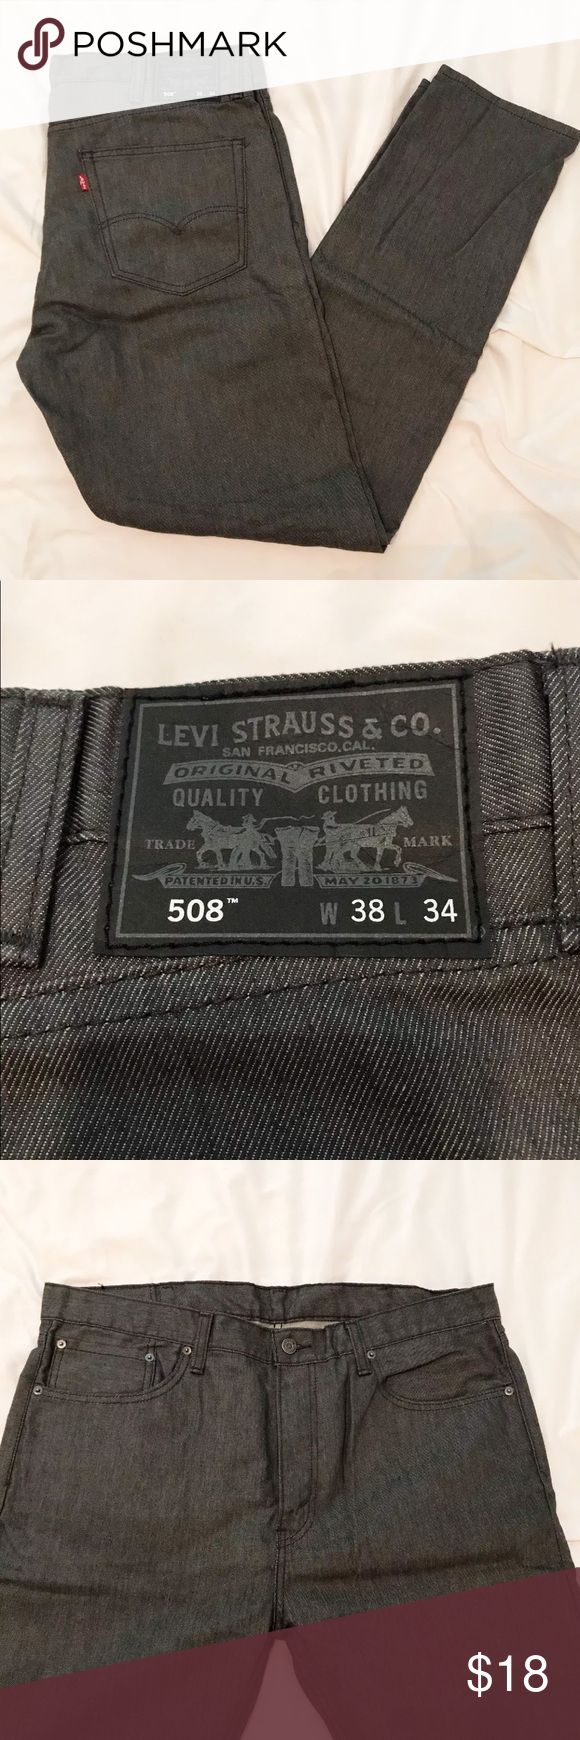 Men's Levi's 508 Dark Denim Jean Excellent condition men's Levi jeans! Worn a couple times and dry cleaned. Levi's Jeans Straight